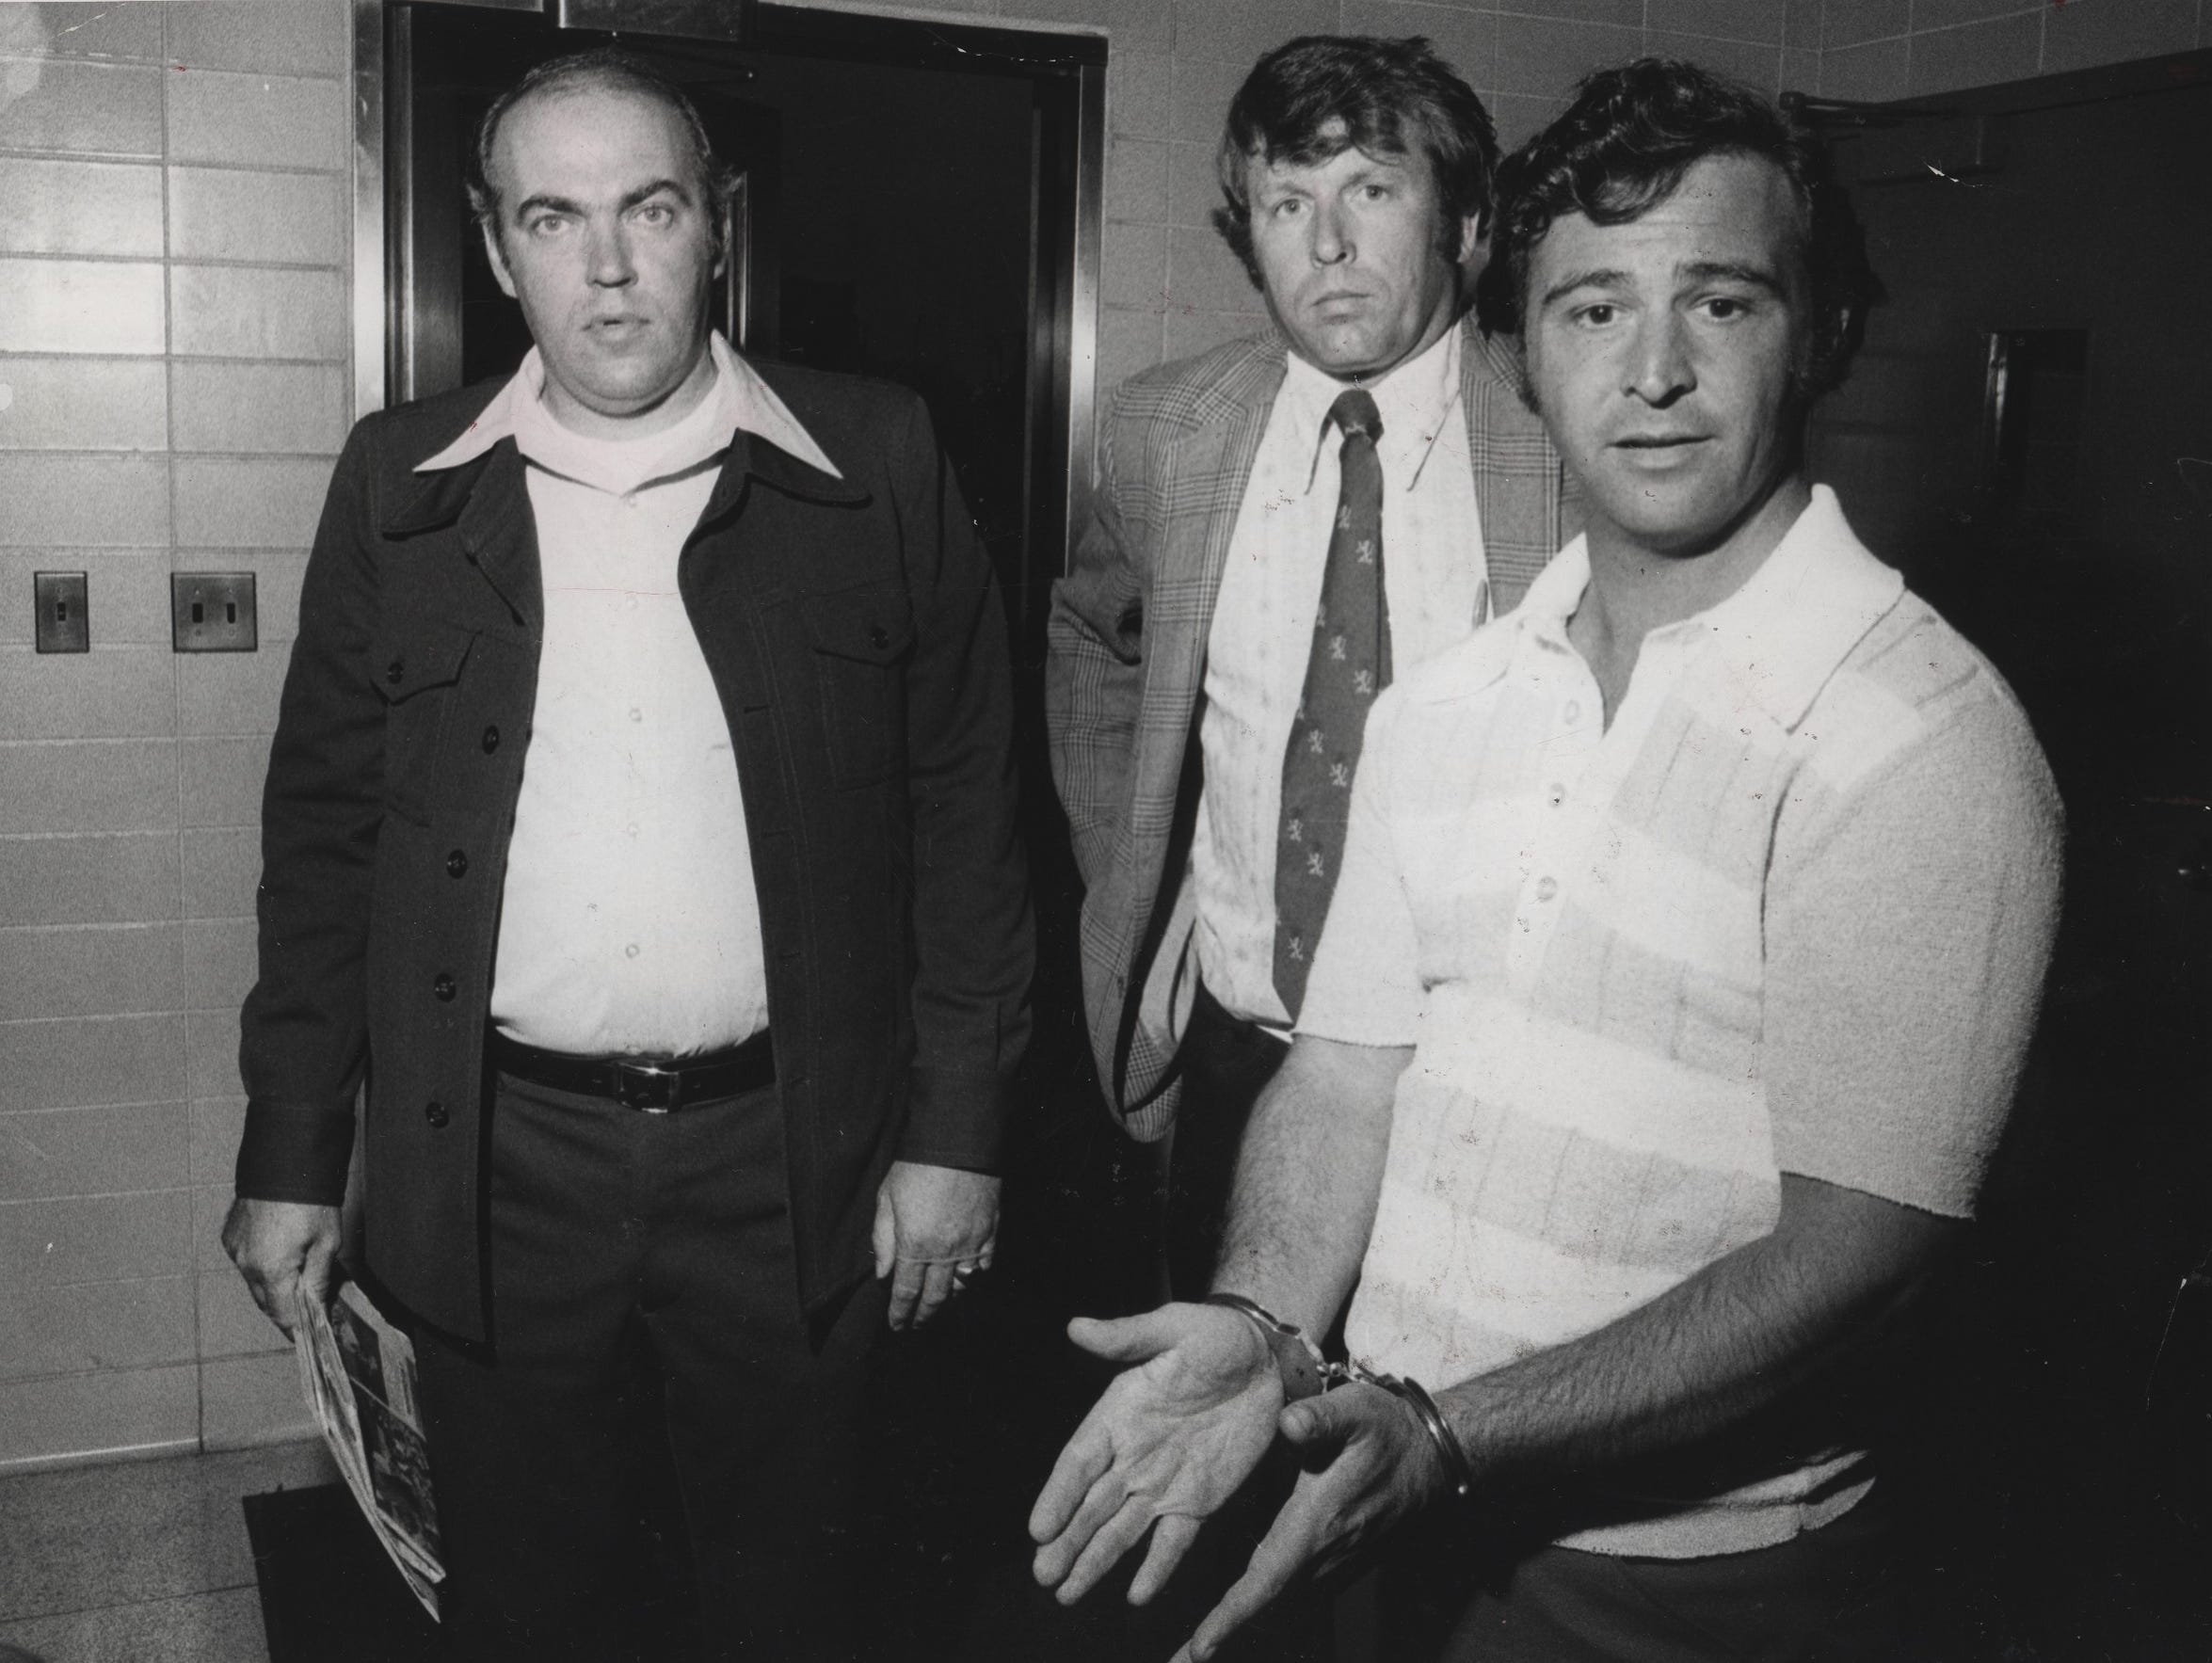 """Salvatore """"Sammy G"""" Gingello (in handcuffs) being taken into the Monroe County Jail in June 1975, after he had been linked to the 1973 murder of Jimmy """"The Hammer"""" Massaro. Gingello  was freed after it was determined that police had fabricated some of the evidence against him and others."""